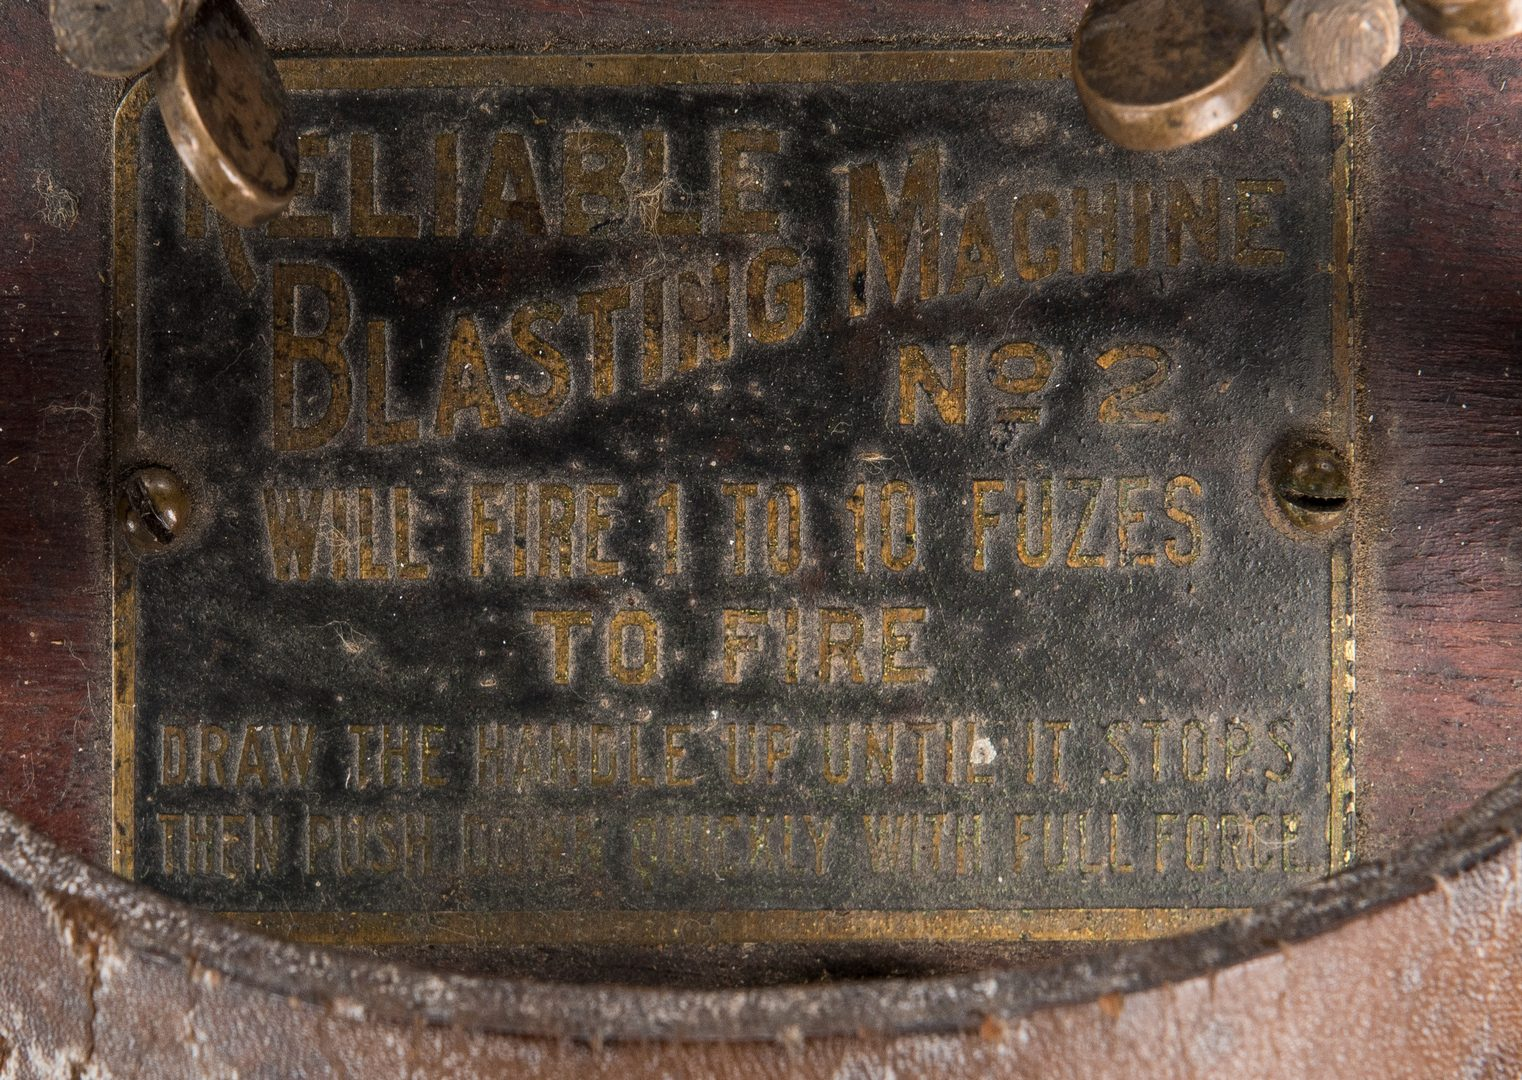 Lot 729: Dupont Reliable Blasting Machine No. 2 w/ Case